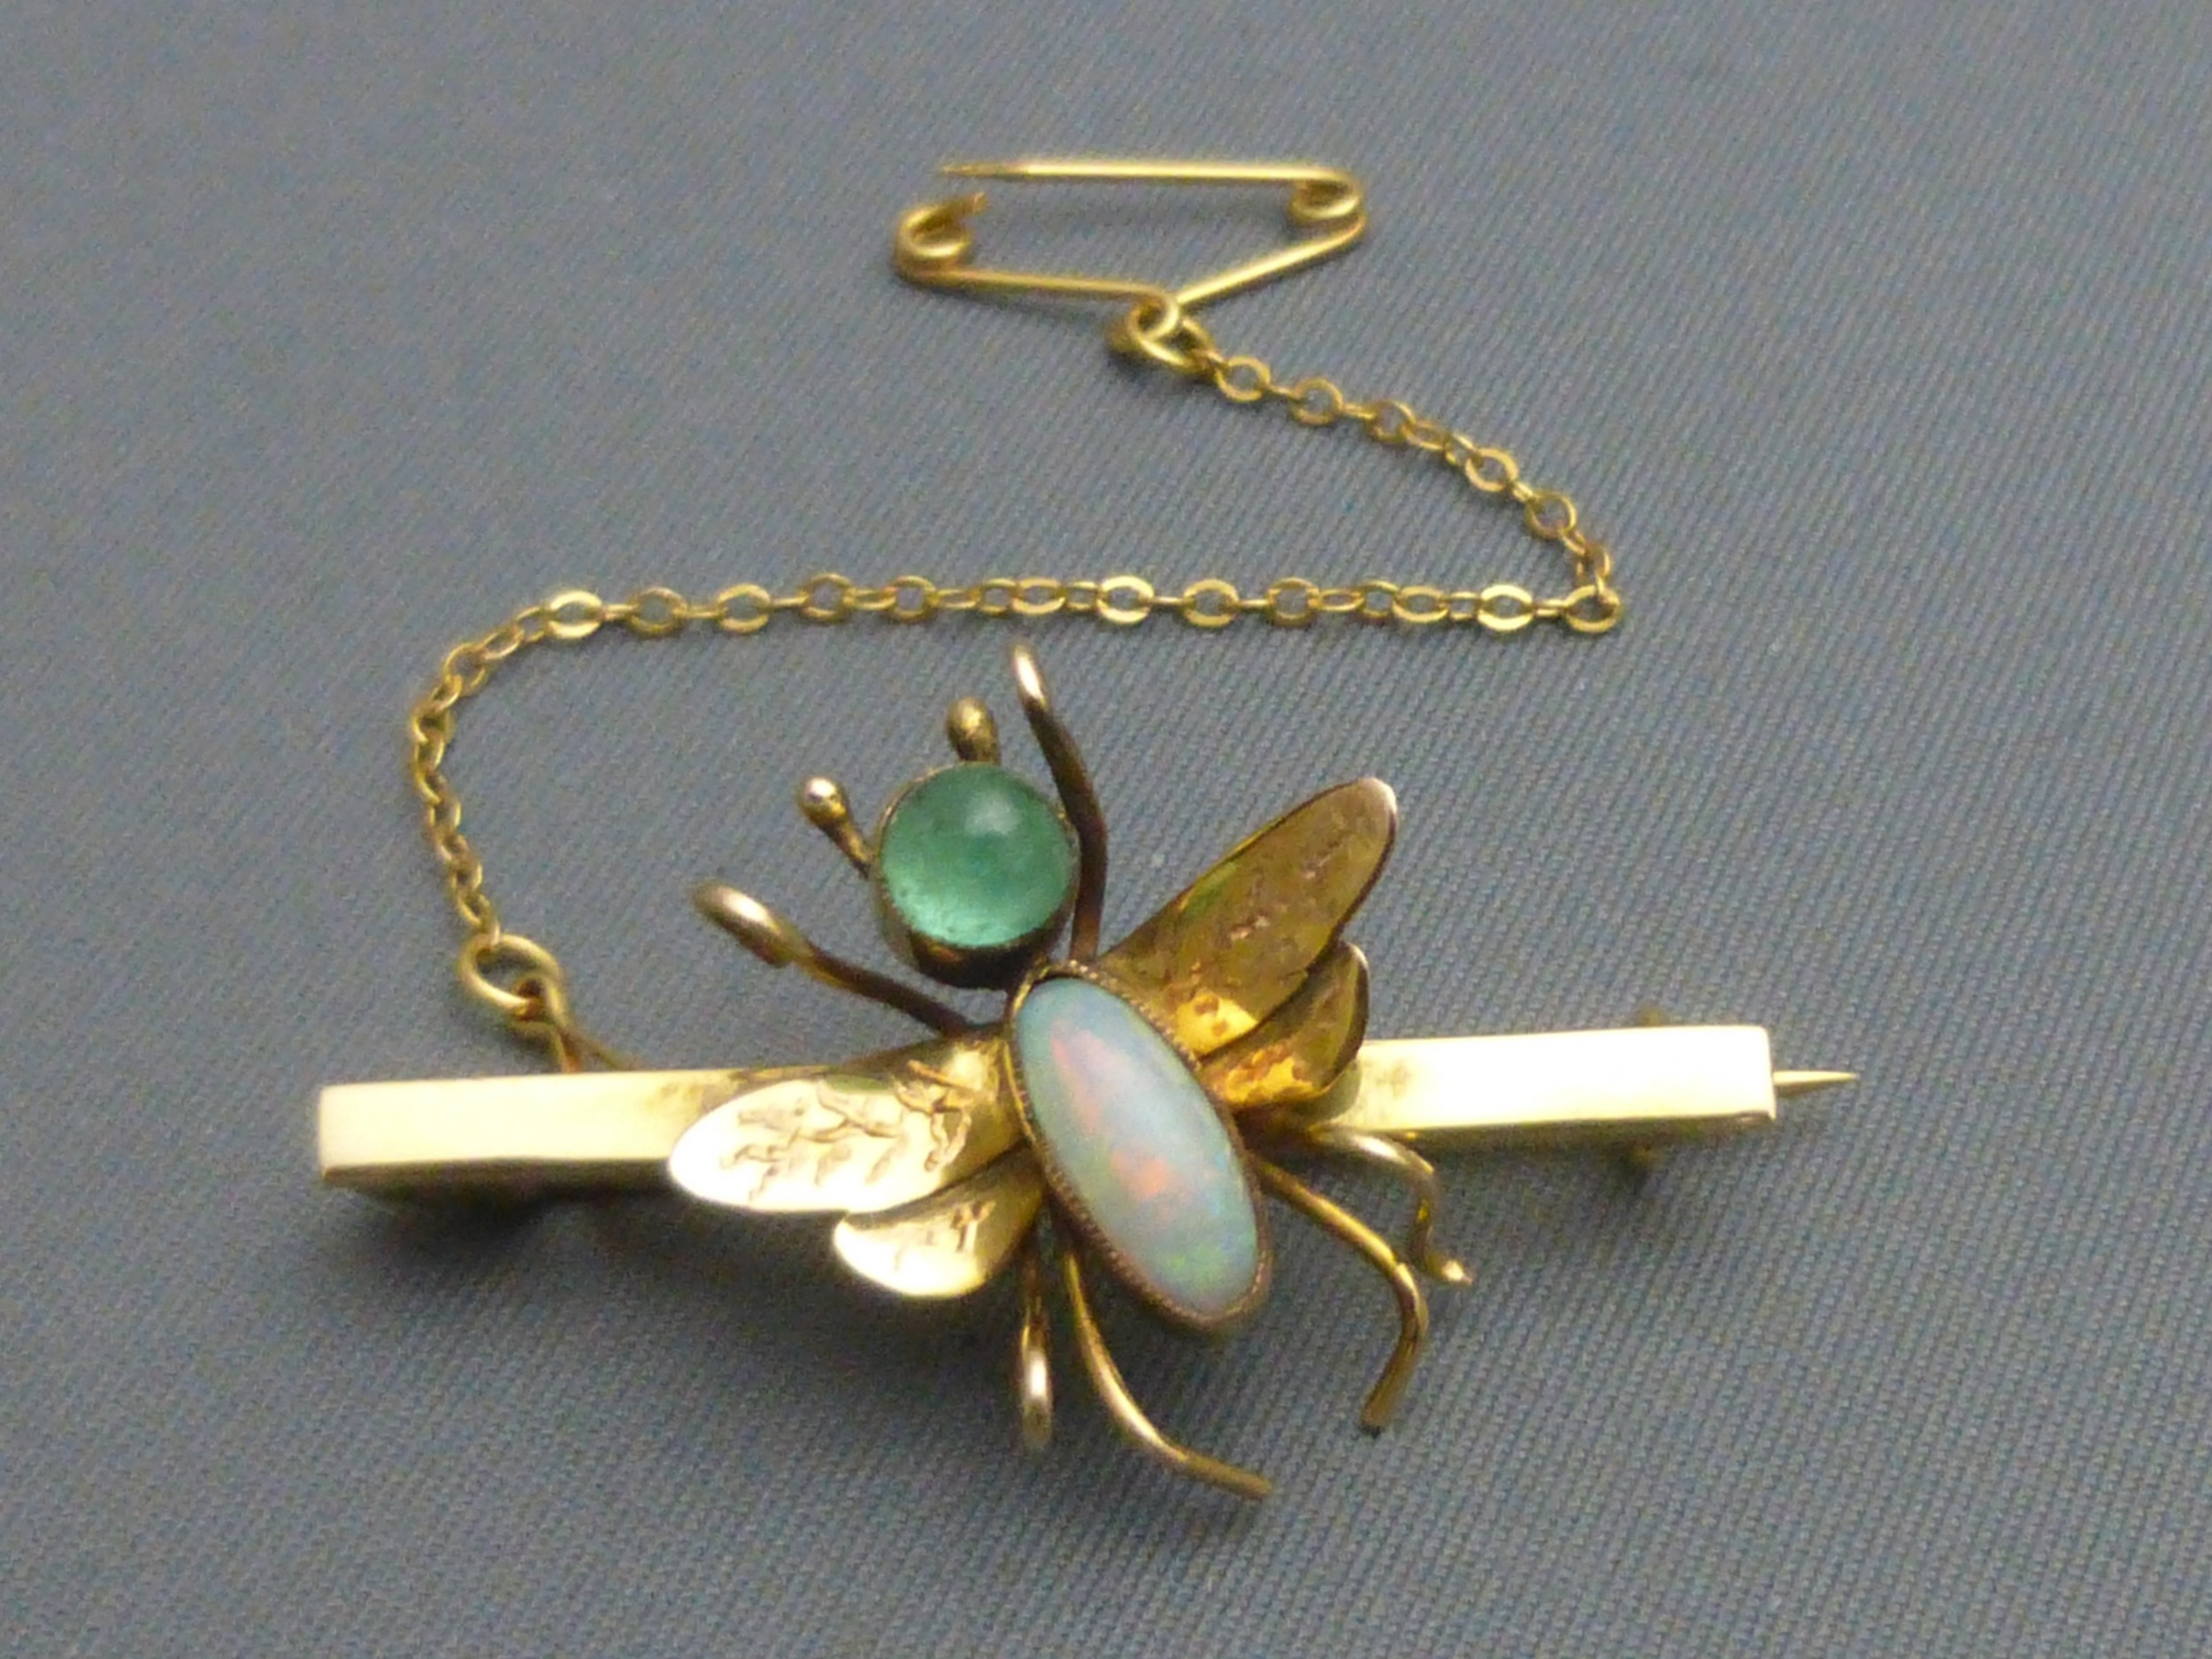 edwardian 9ct gold opal and emerald fly brooch